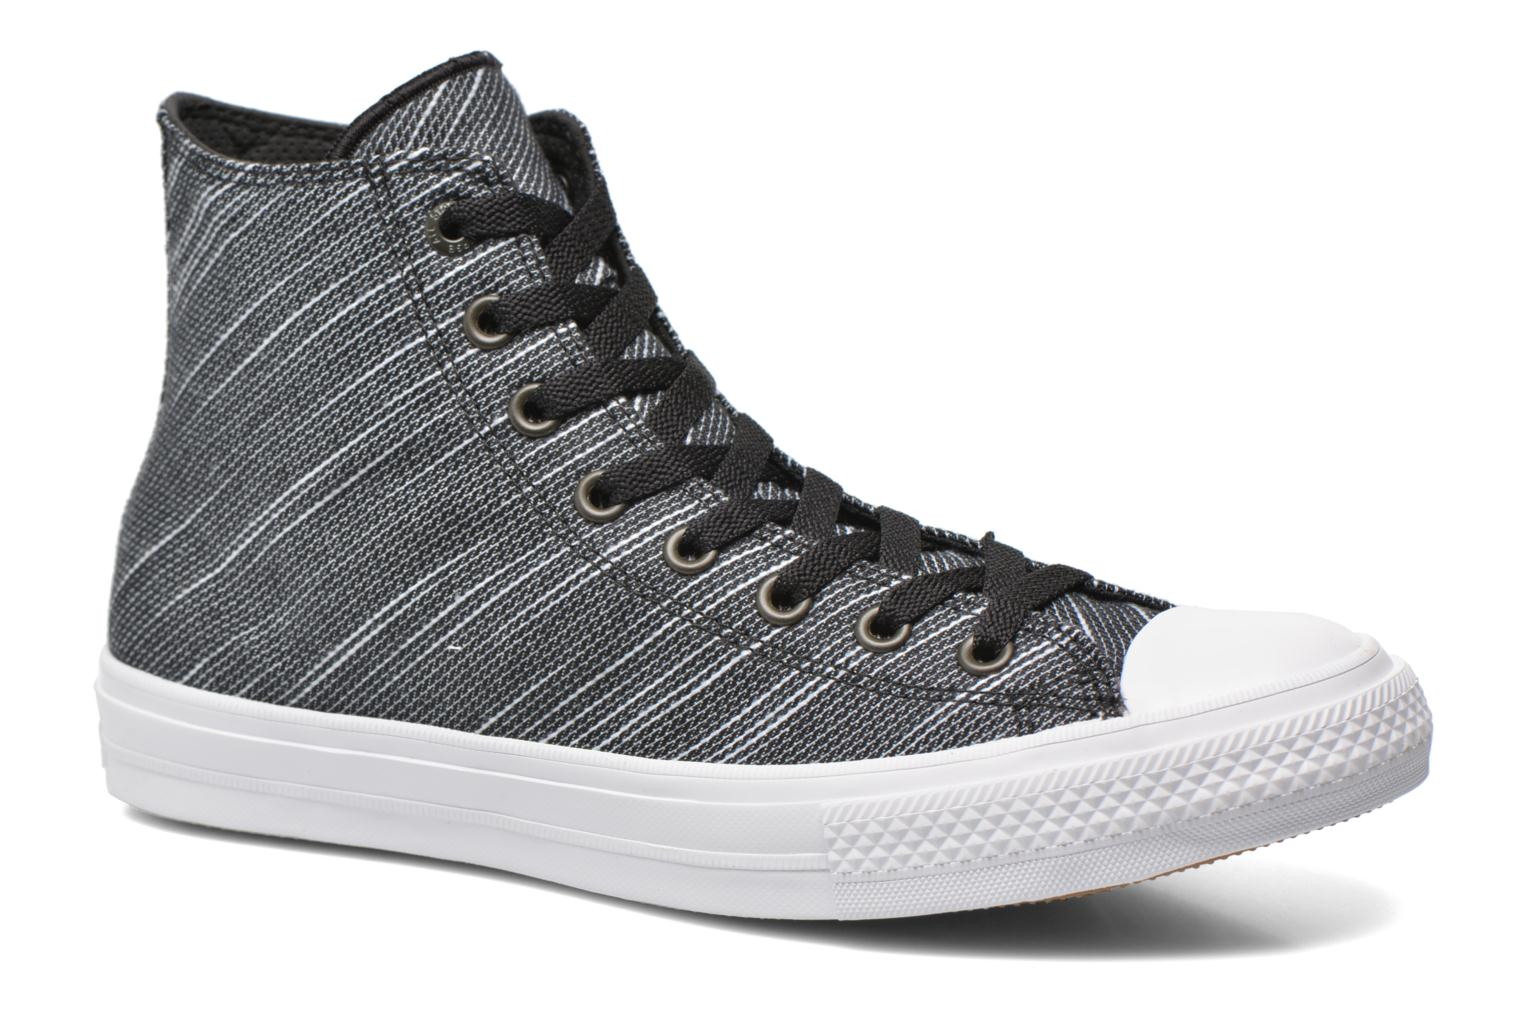 Chuck Taylor All Star II Hi M Knit Black-White-Navy